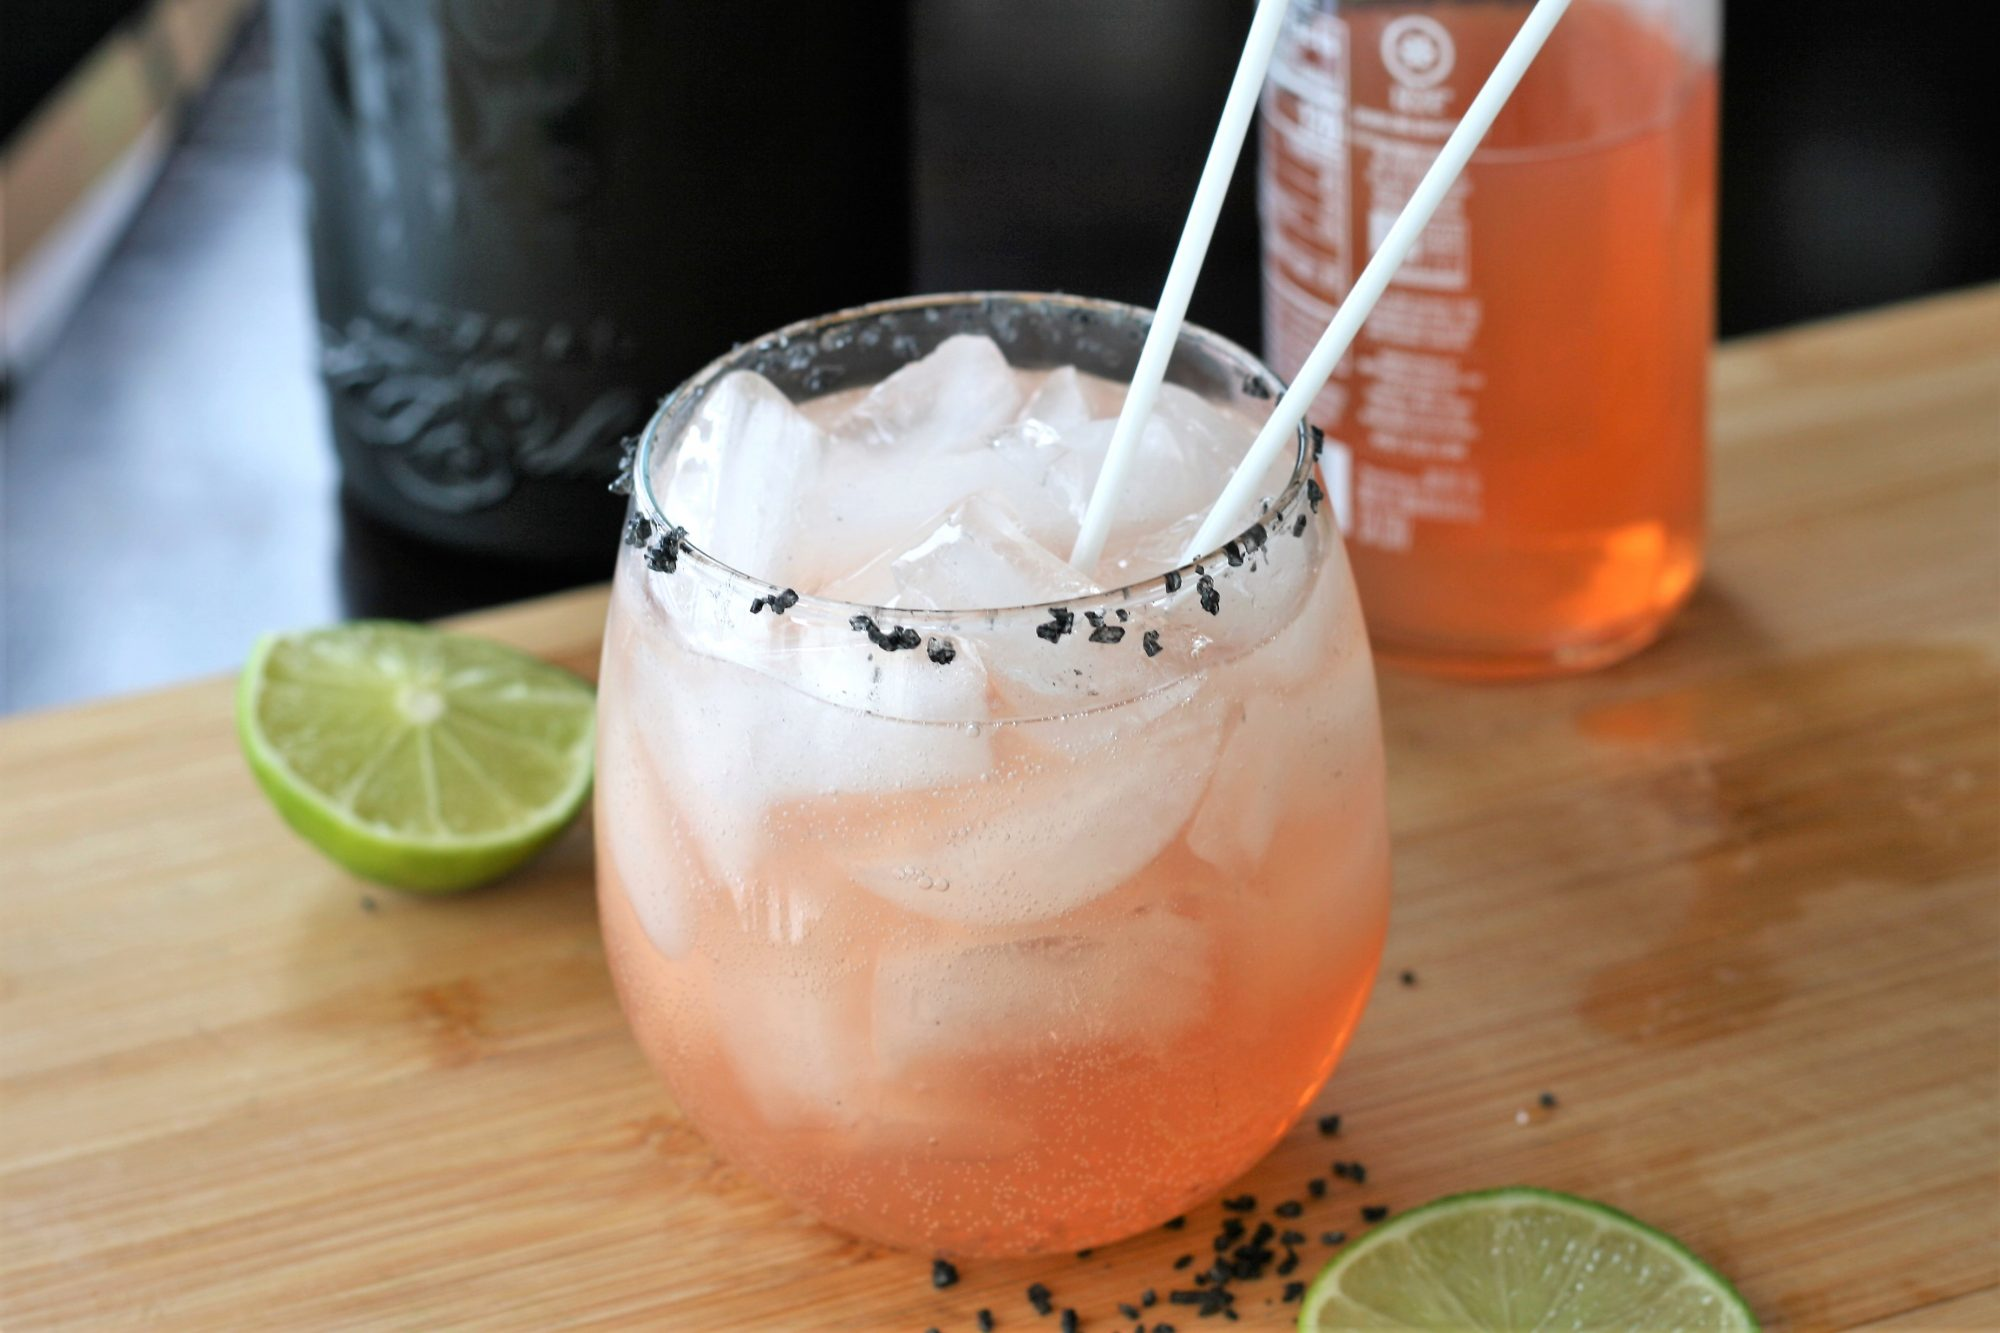 paloma in a glass with ice and straws